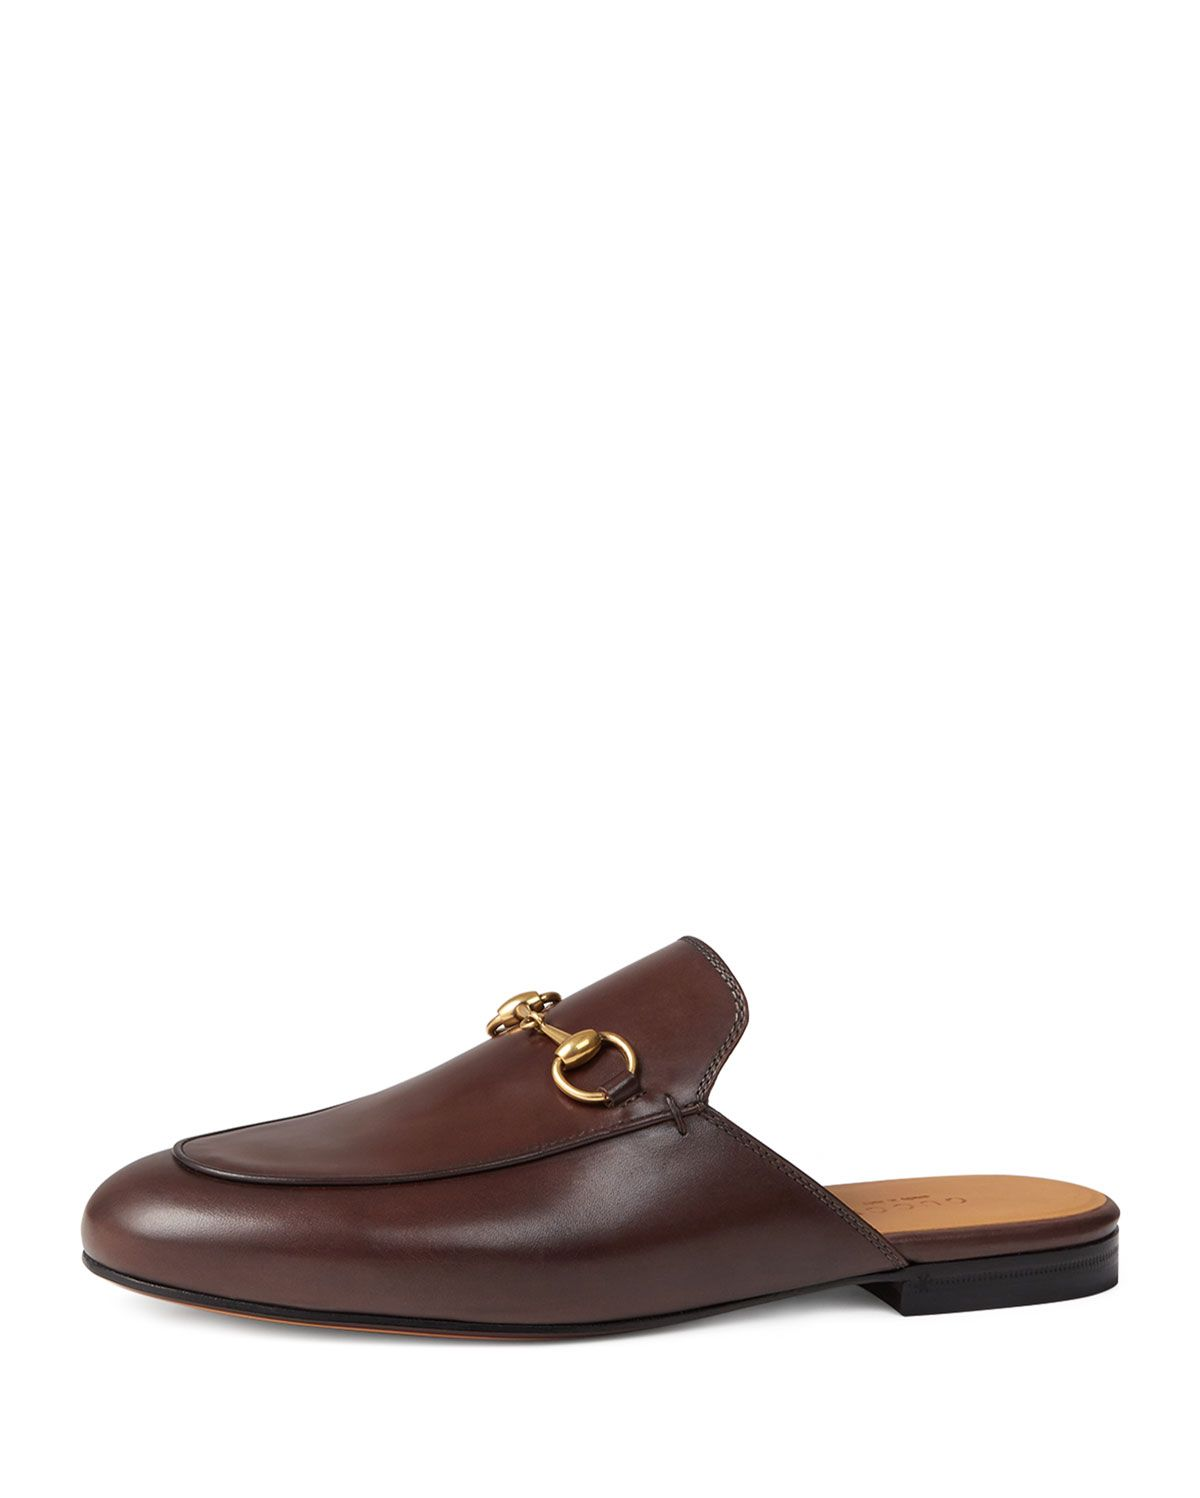 369681cb4 Gucci Princetown Leather Horsebit Mule Slipper Flat, Brown, Size:  39.0B/9.0B, Fondente Brown